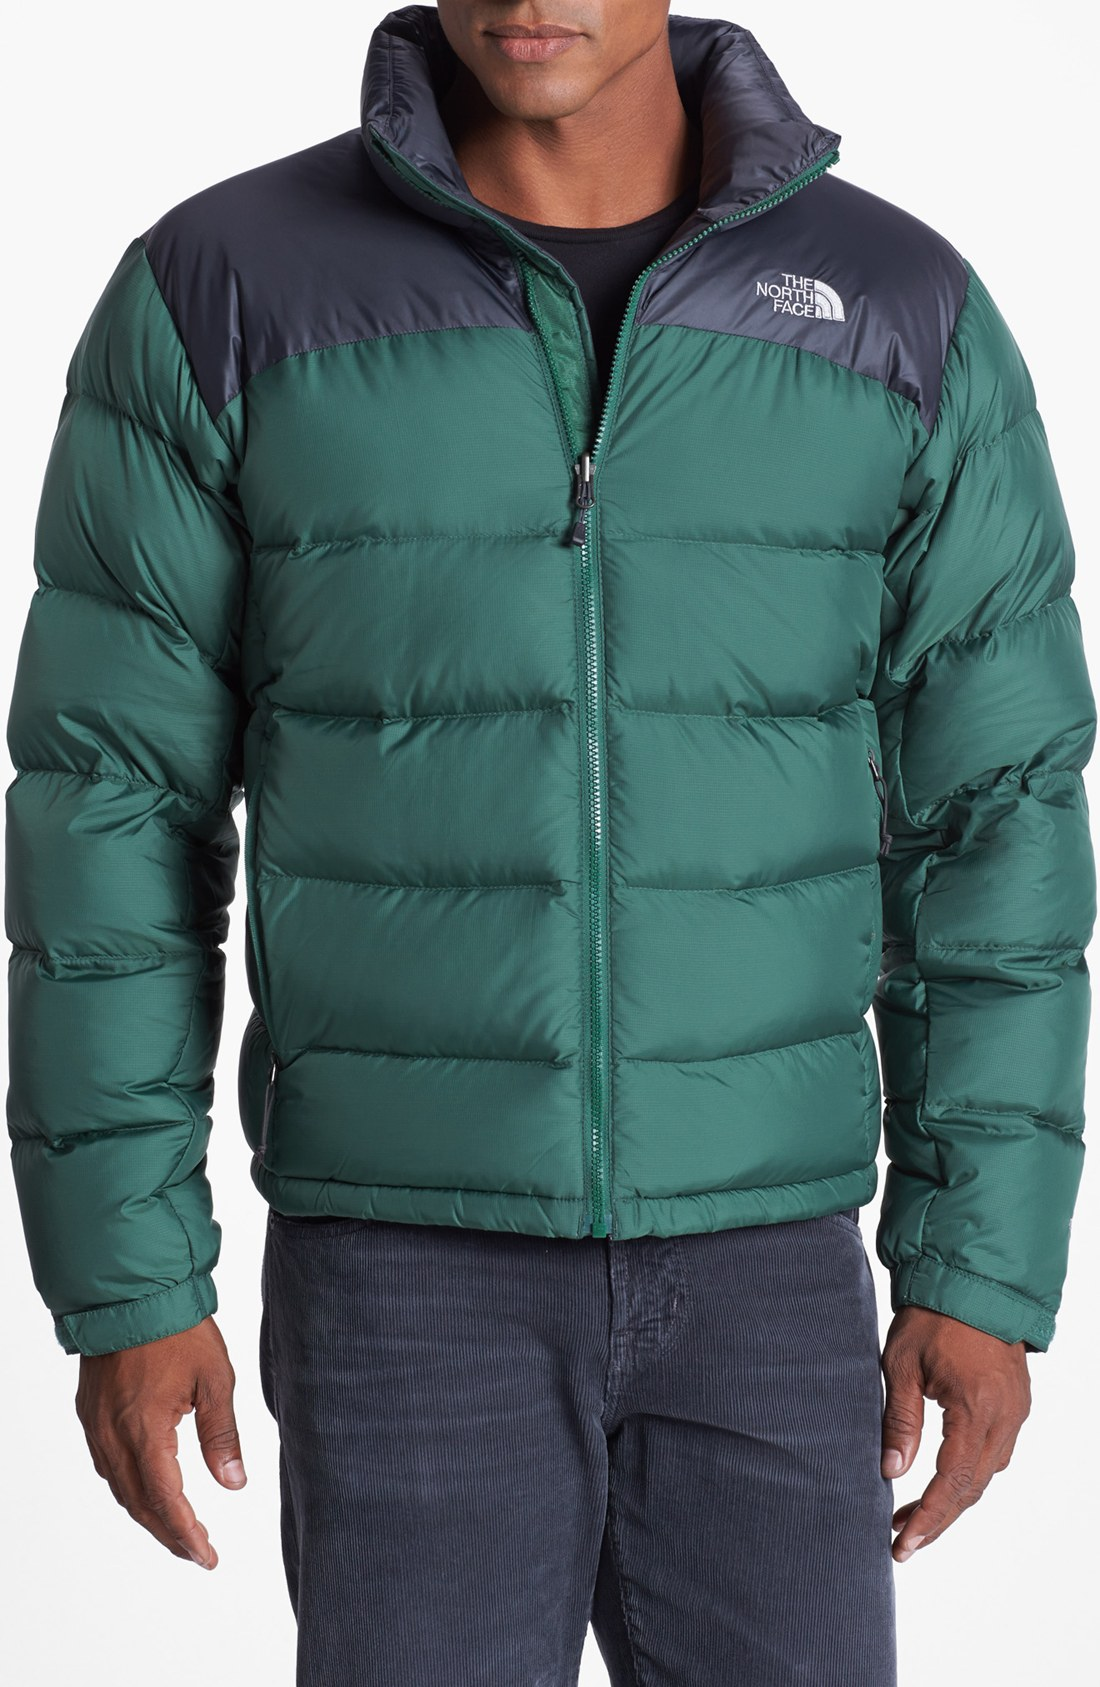 The North Face Nuptse 2 Down Jacket In Green For Men